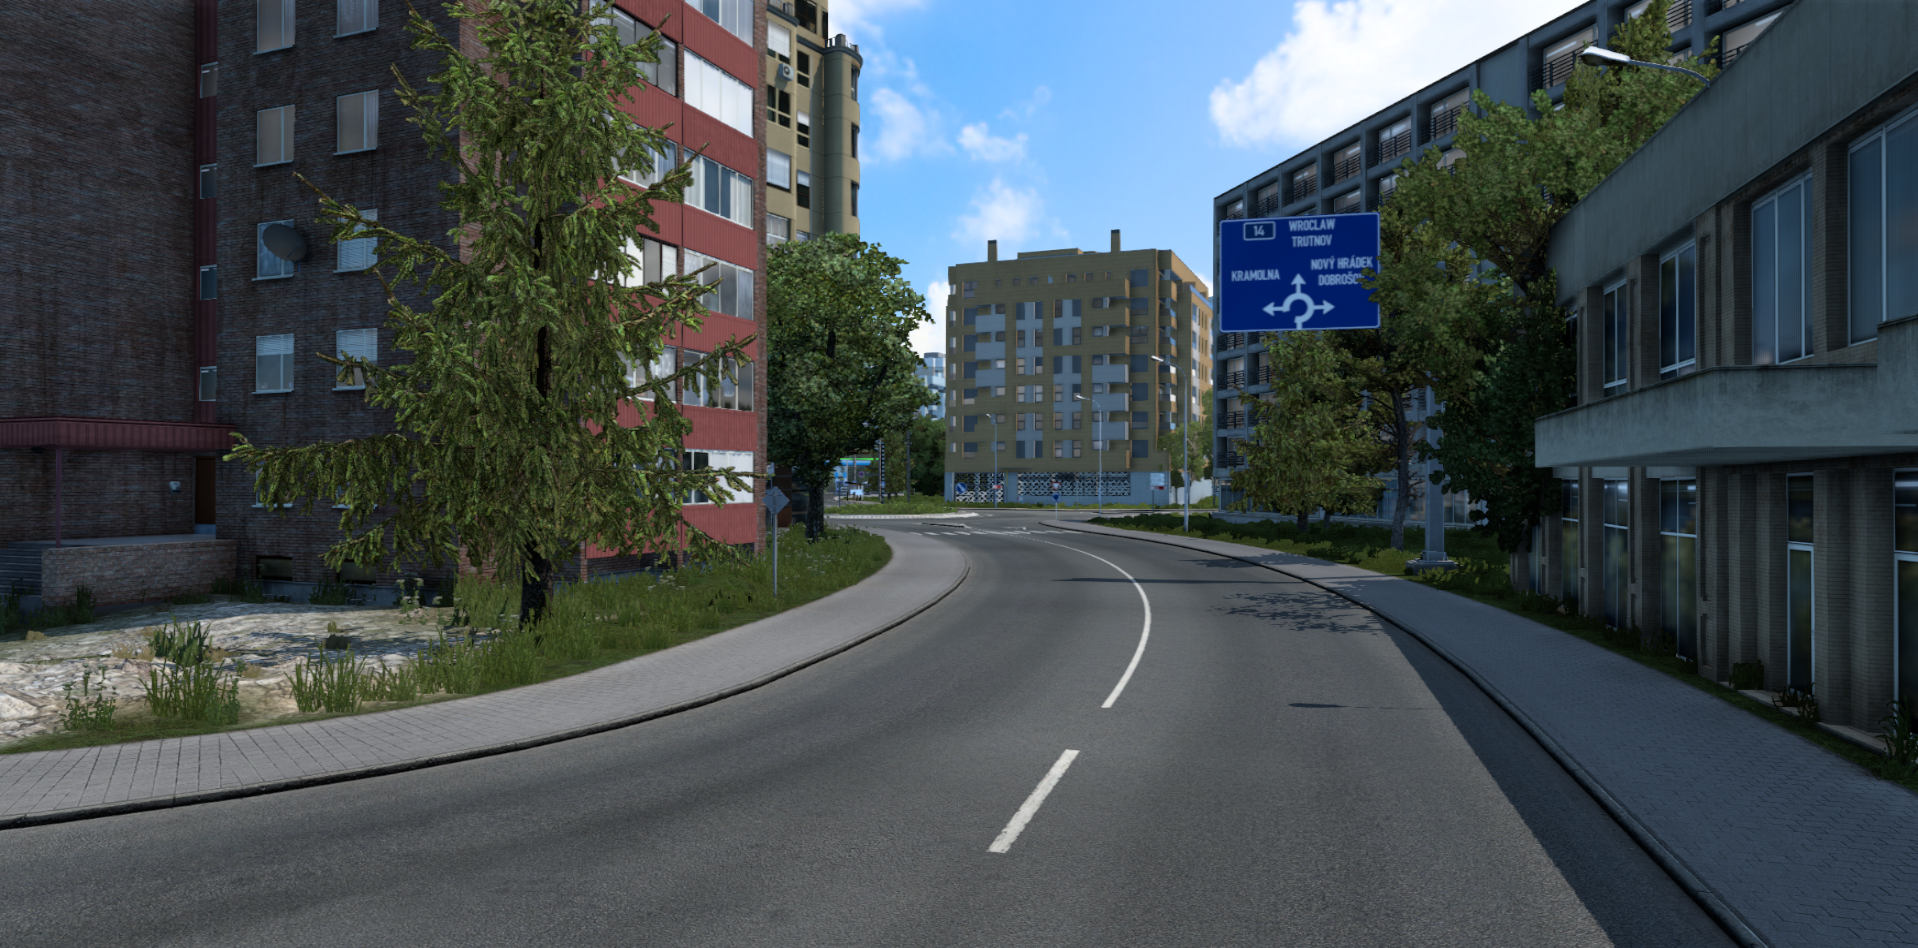 ets2_20211007_202827_00.png